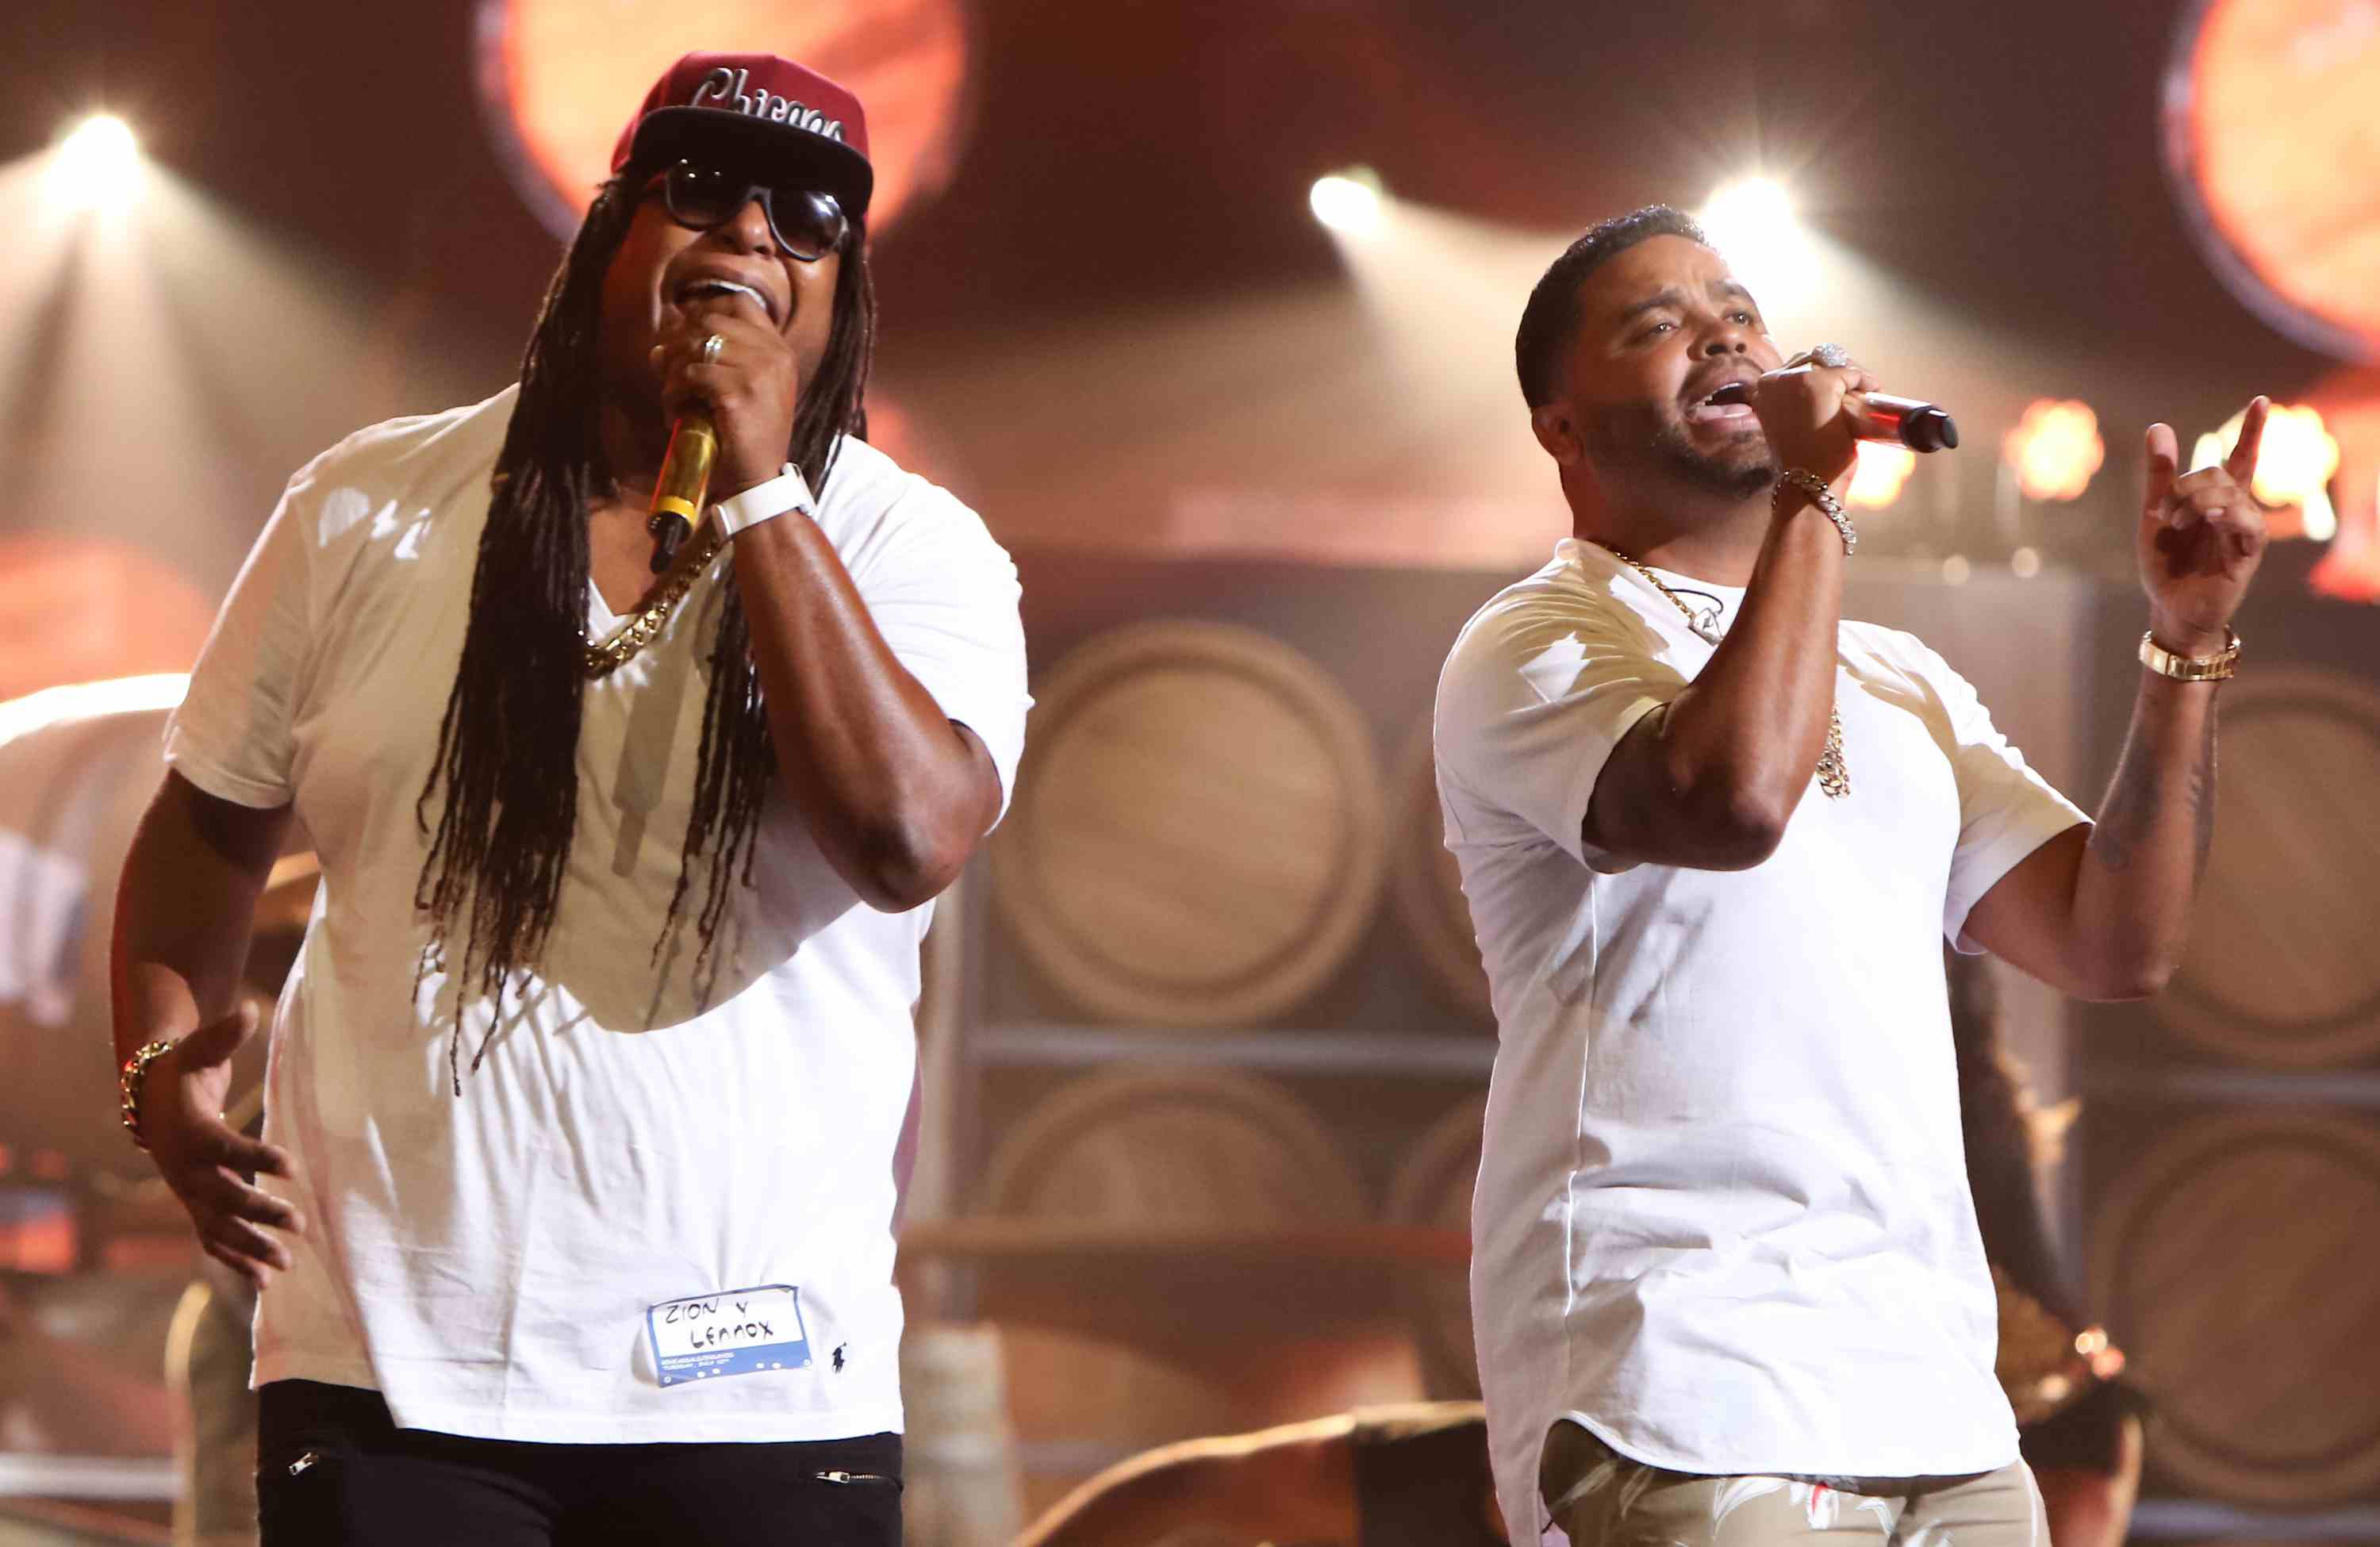 Zion Y Lennox perform during Univisions Premios Juventud Awards Rehearsals - Day 1 at Bank United Center on July 11, 2016 in Miami, Florida.